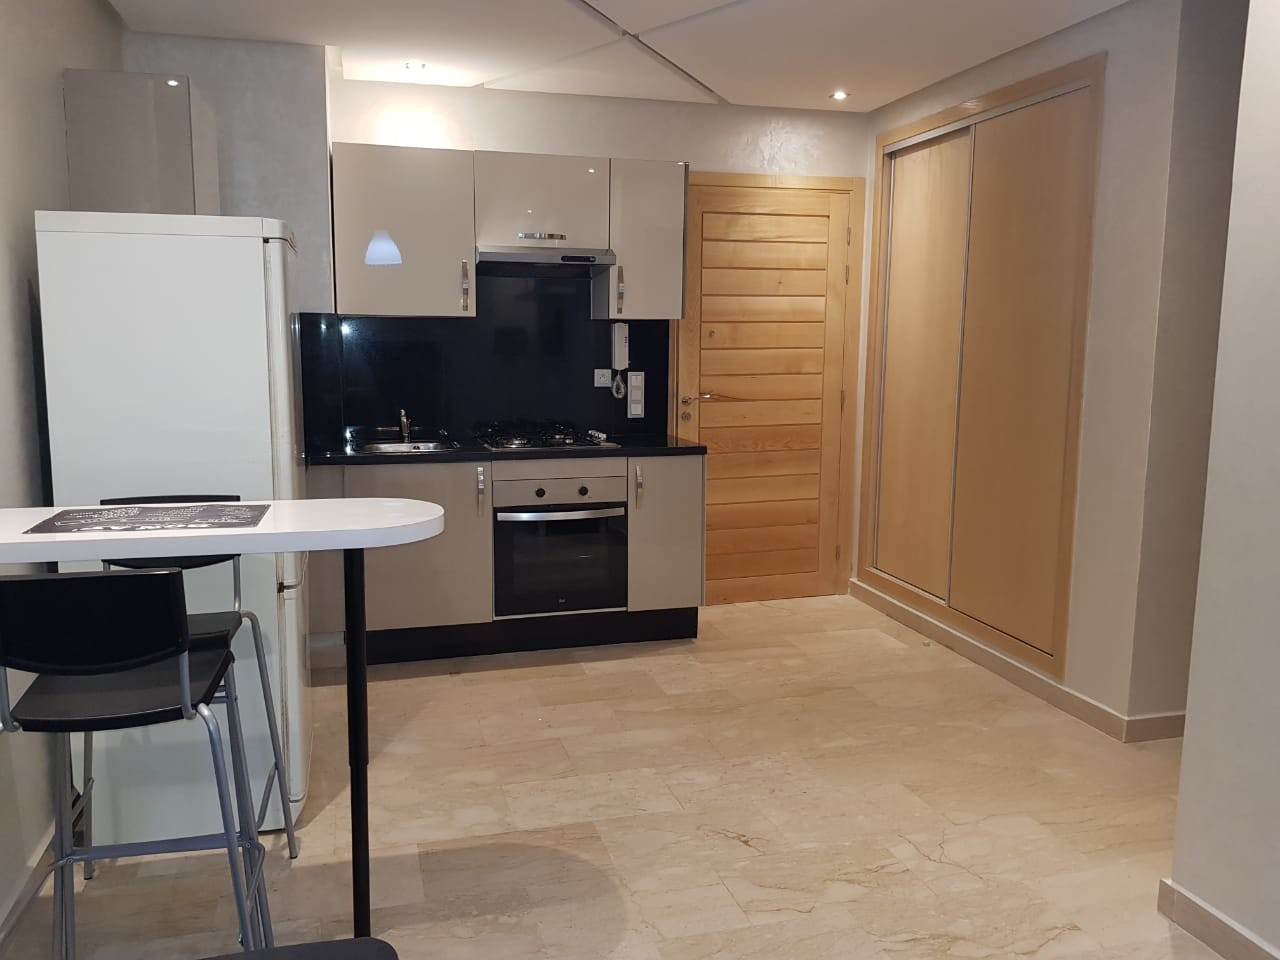 Location <strong>Appartement</strong> Casablanca Roches Noires <strong>37 m2</strong>